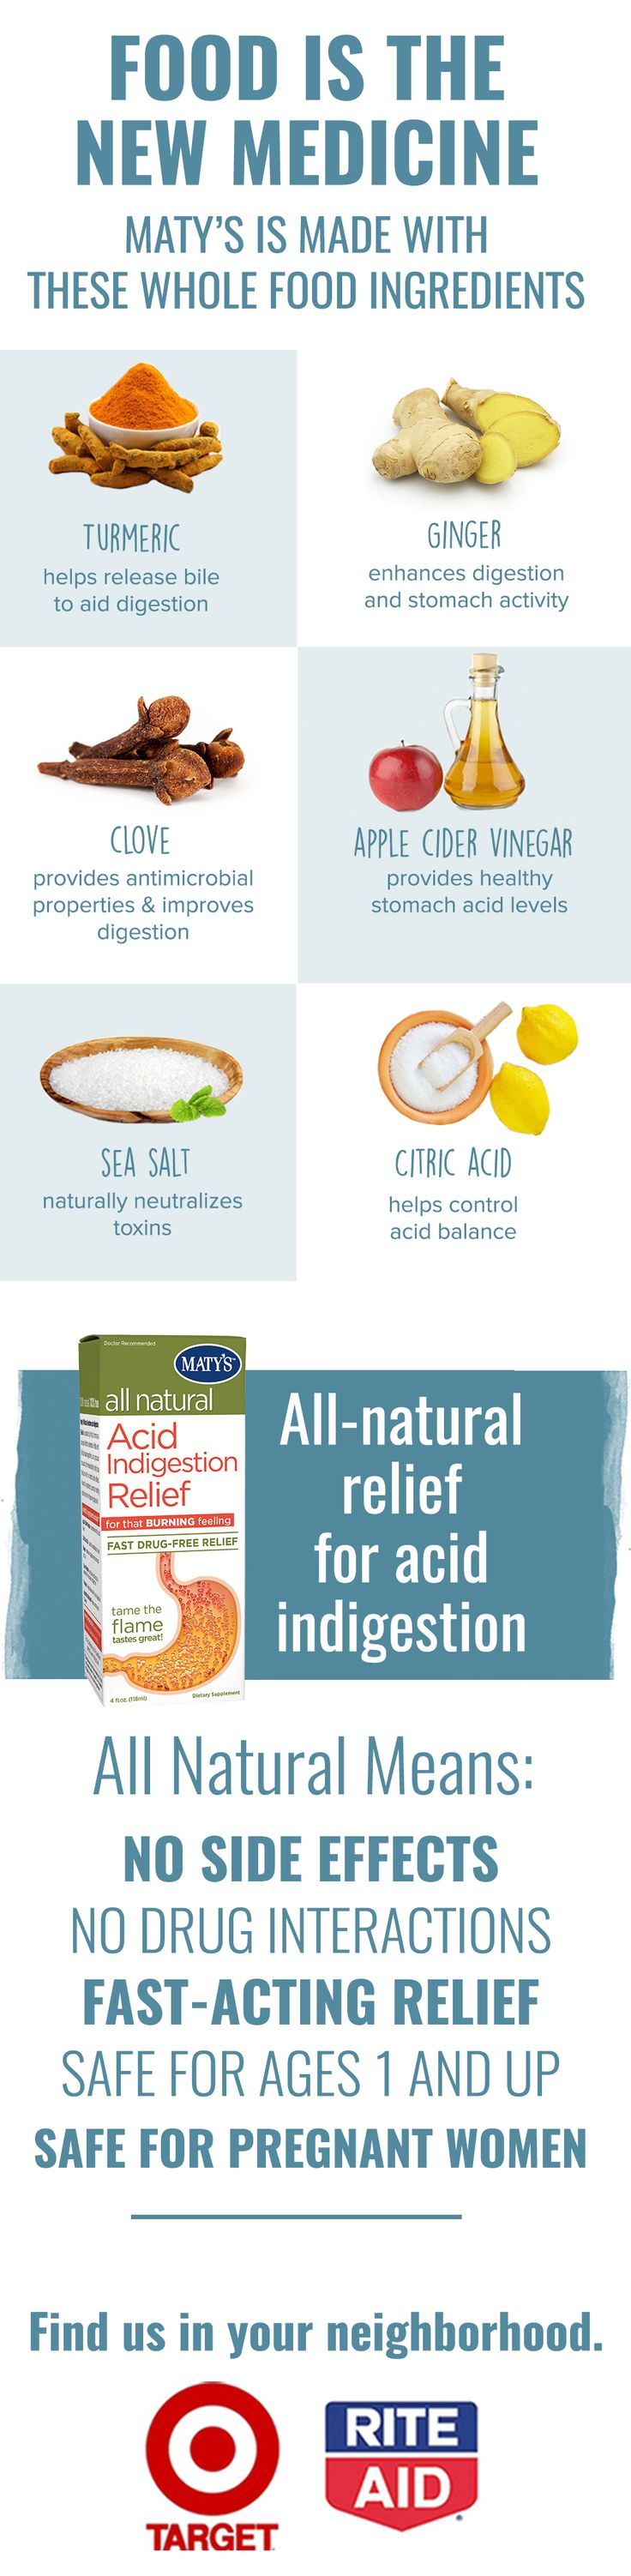 A natural remedy to treat heartburn, acid indigestion, GERD, and acid reflux with no side effects and no drug interactions. Skip the drugs and try Maty's natural Acid Indigestion Relief for heartburn.